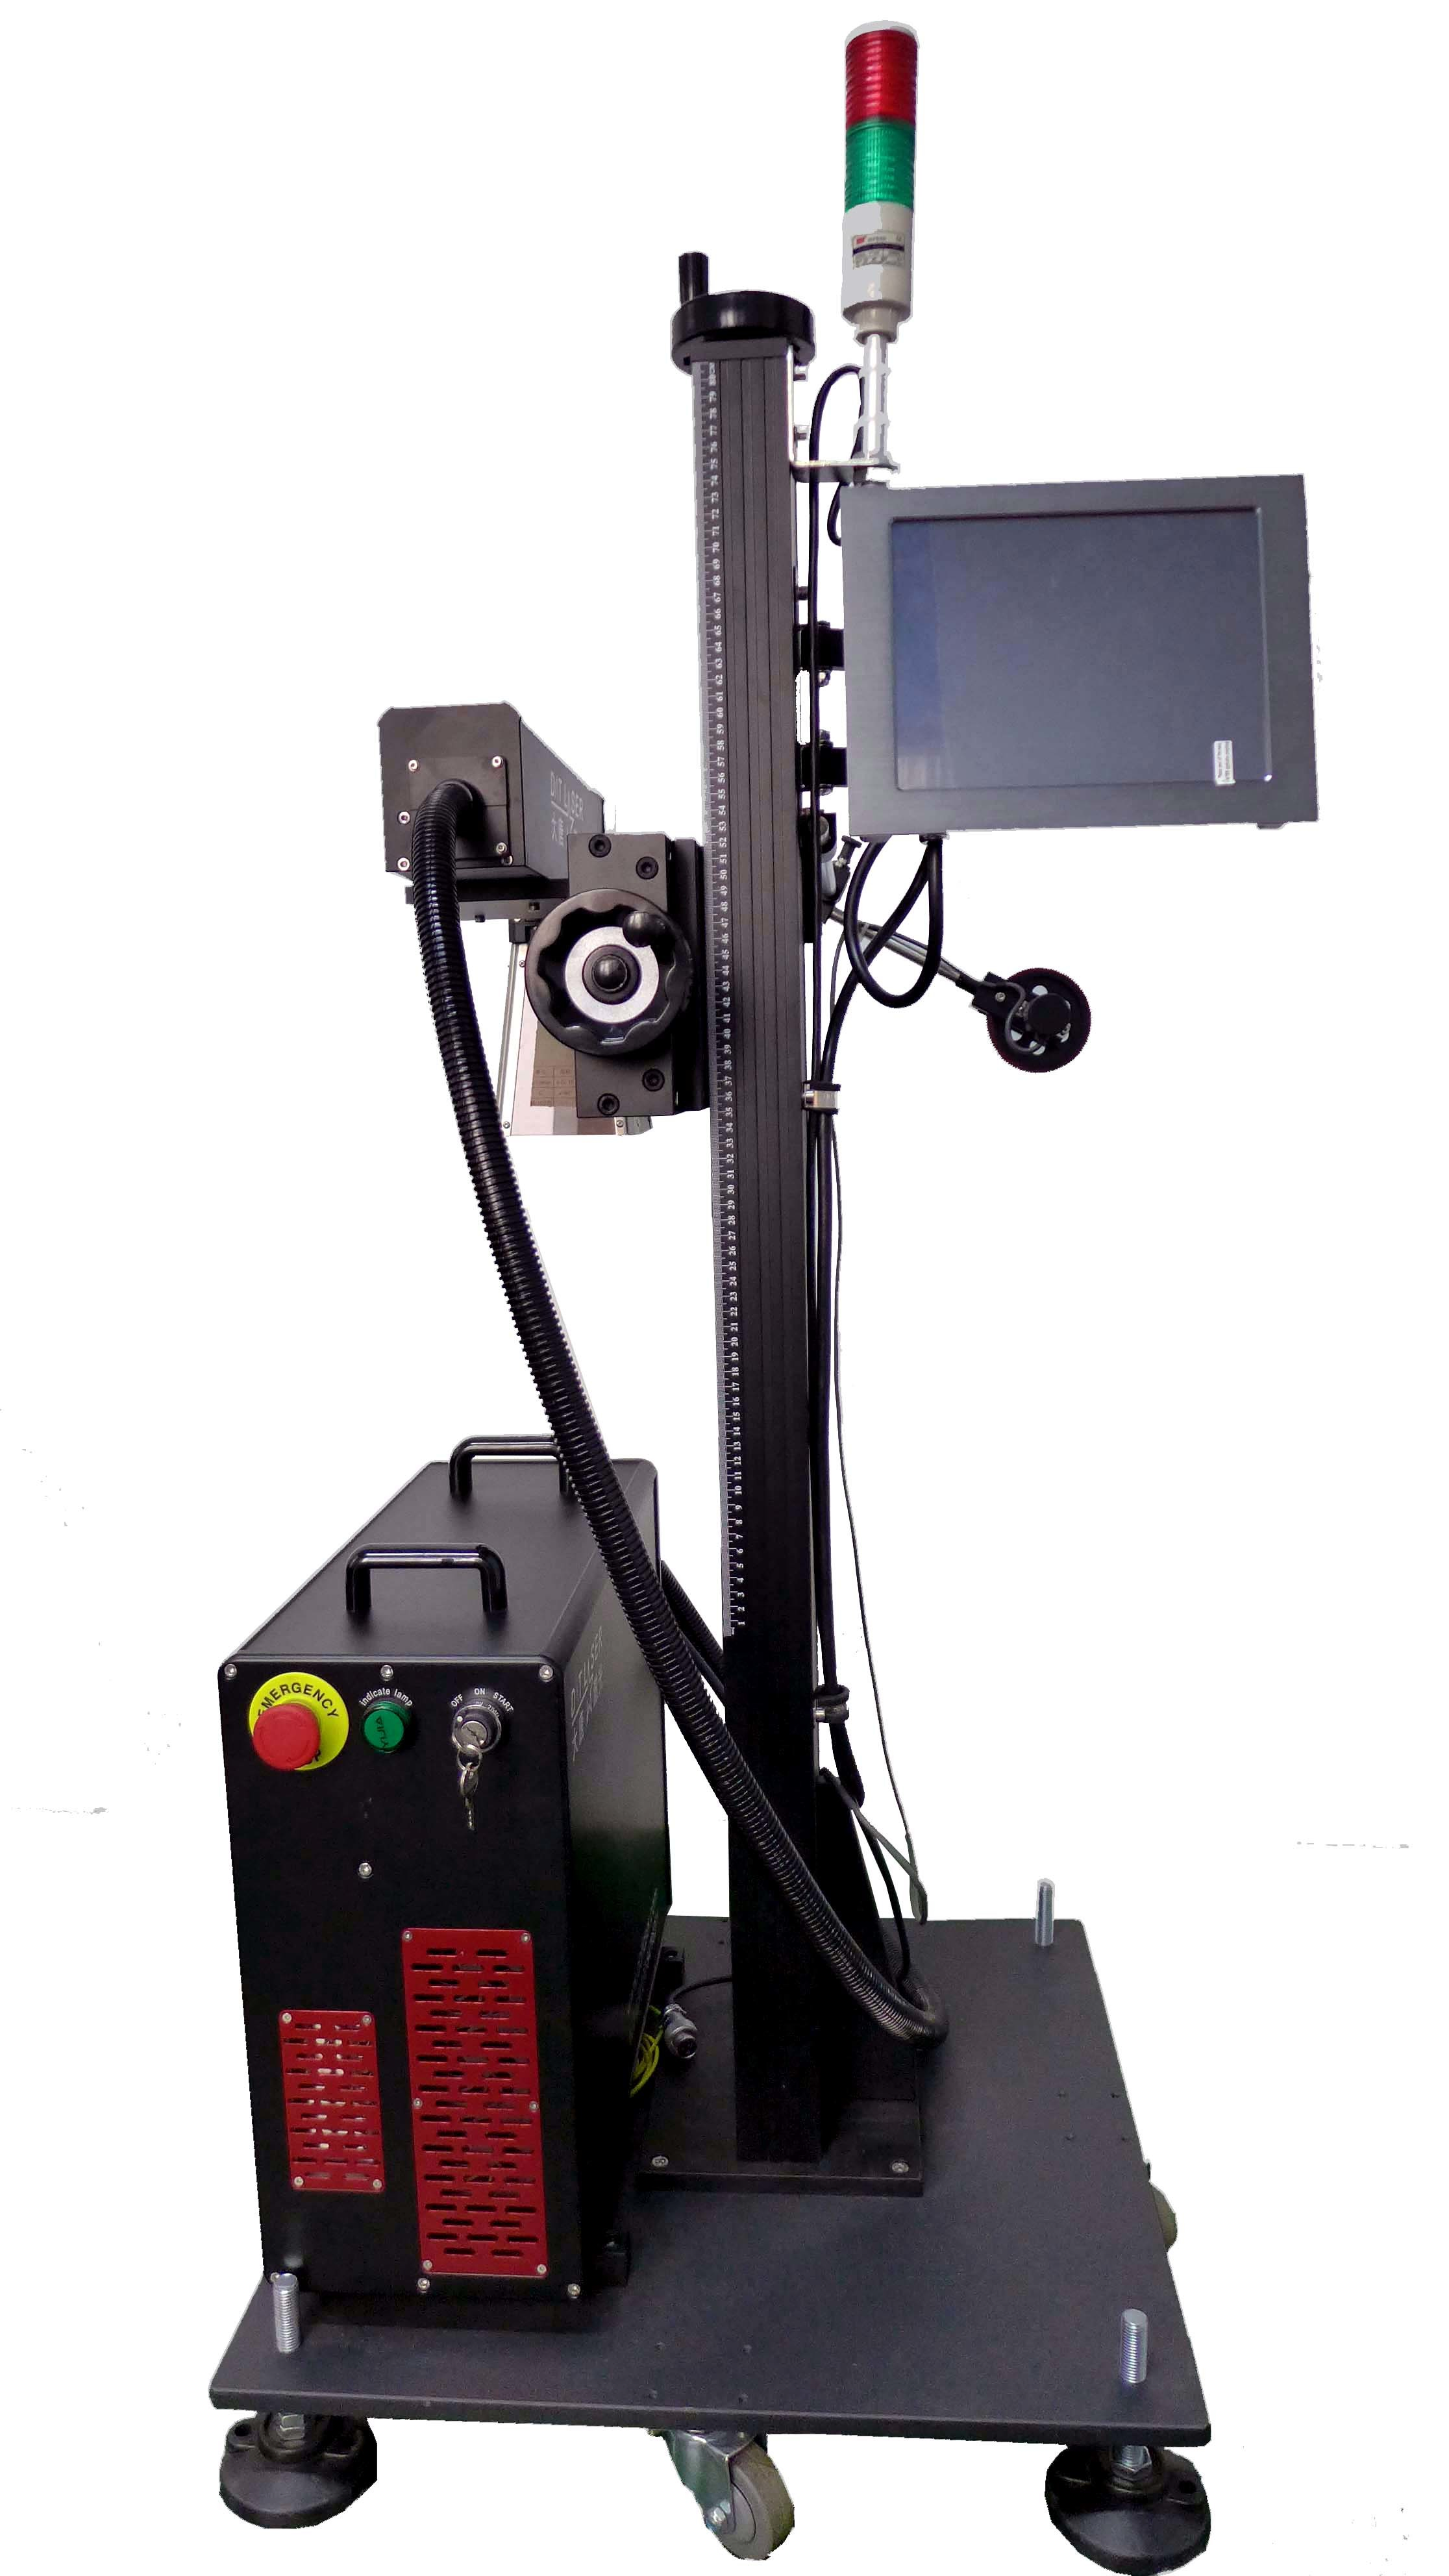 20W 30W 50W Fiber Laser Marker for PP/PVC/PE/HDPE Plastic Pipe, Fittings etc Non Metal